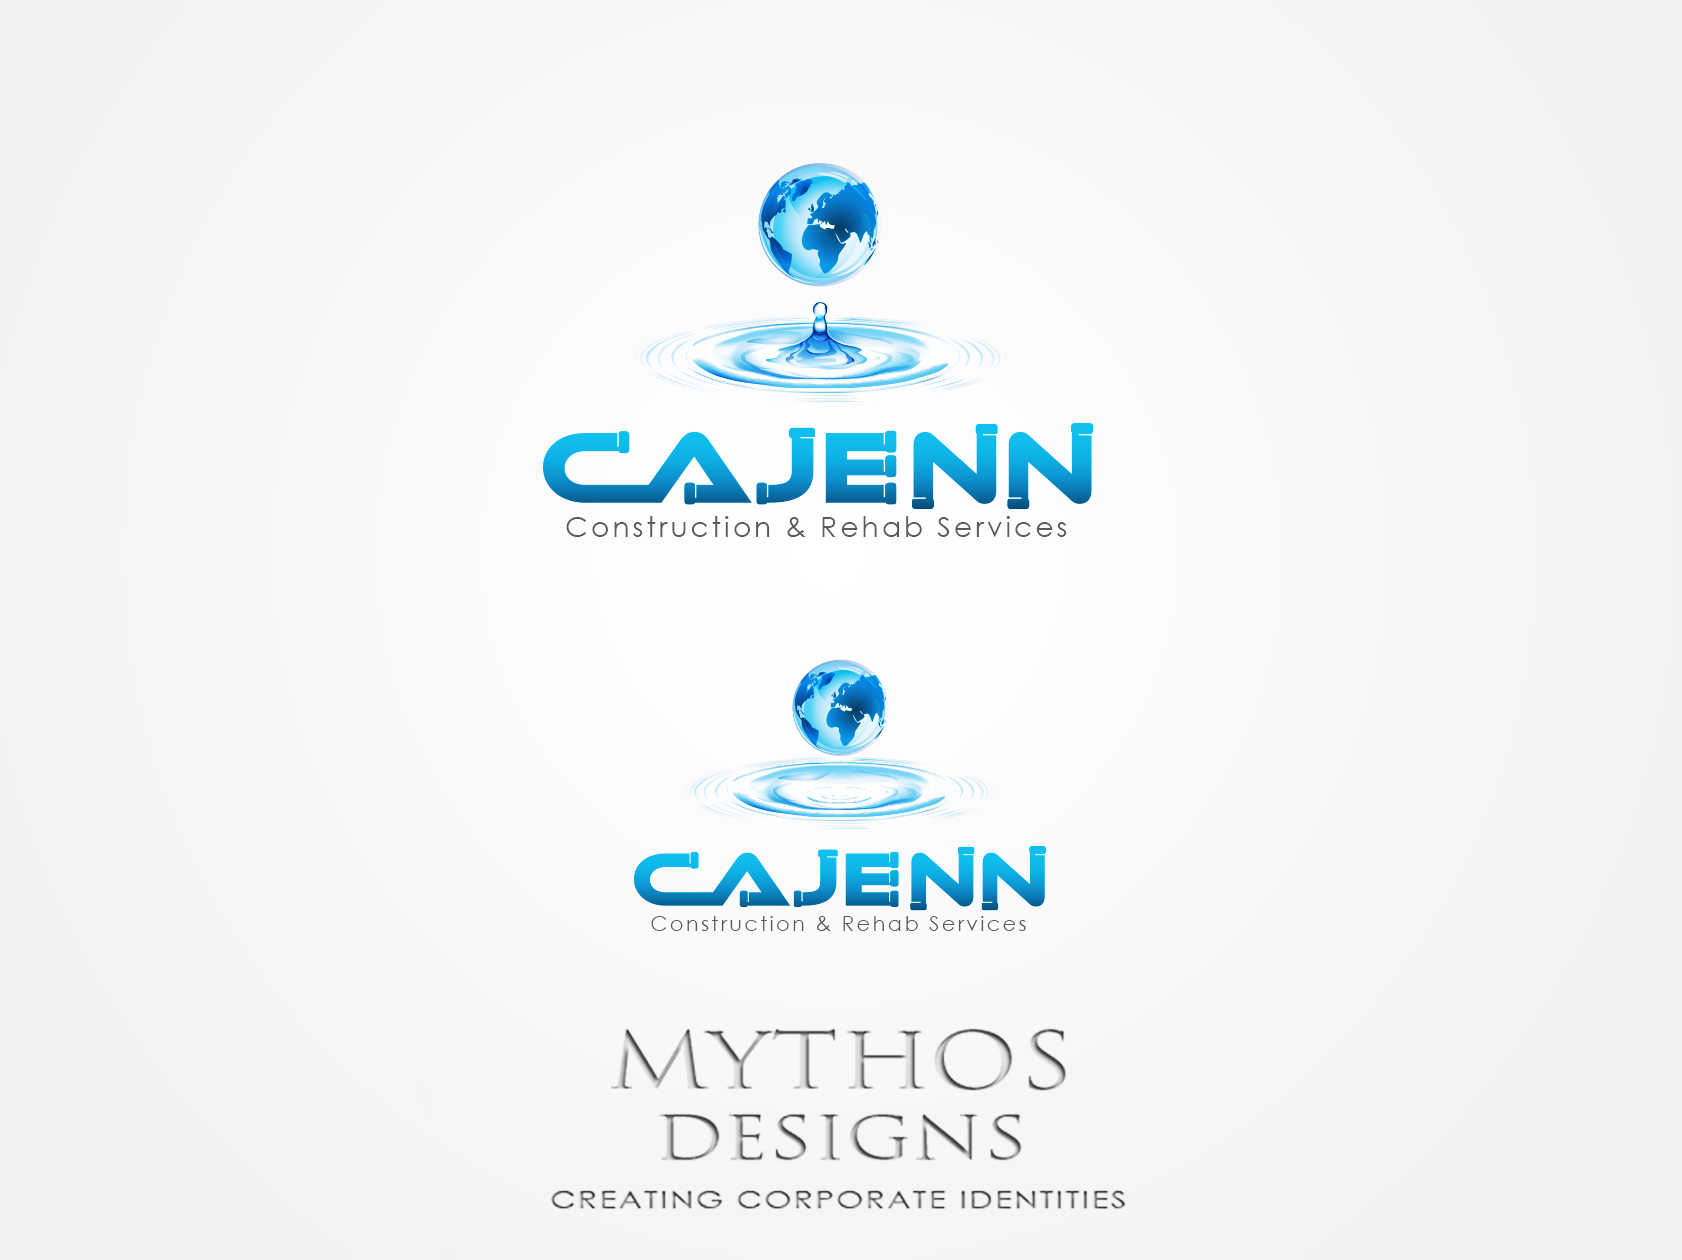 Logo Design by Mythos Designs - Entry No. 61 in the Logo Design Contest New Logo Design for CaJenn Construction & Rehab Services.